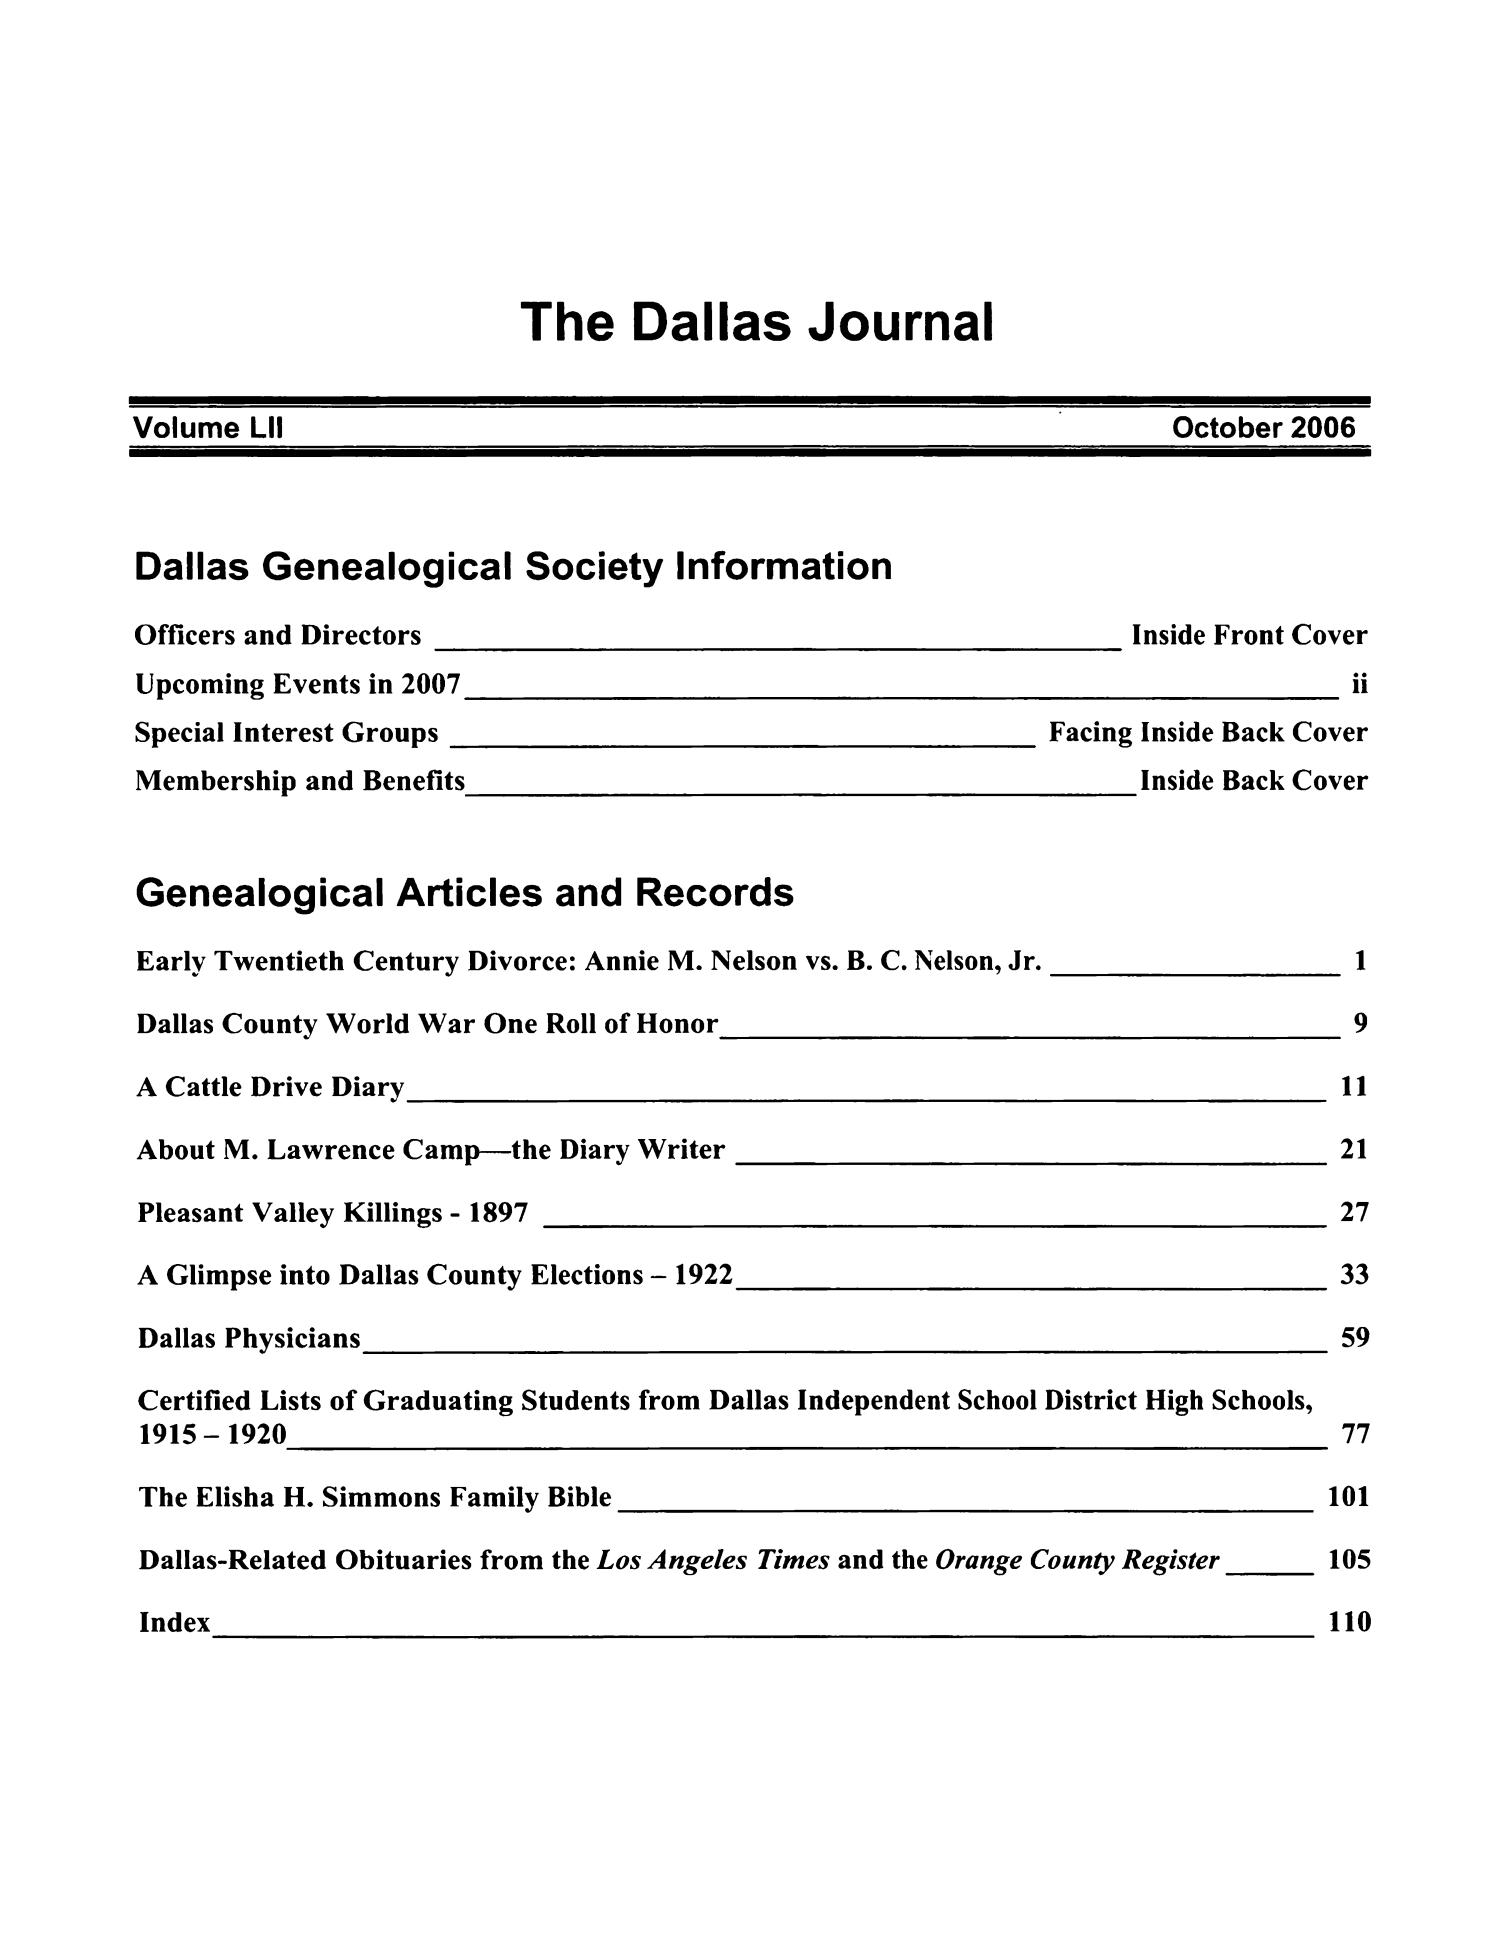 The Dallas Journal, Volume 51, 2006                                                                                                      Title Page